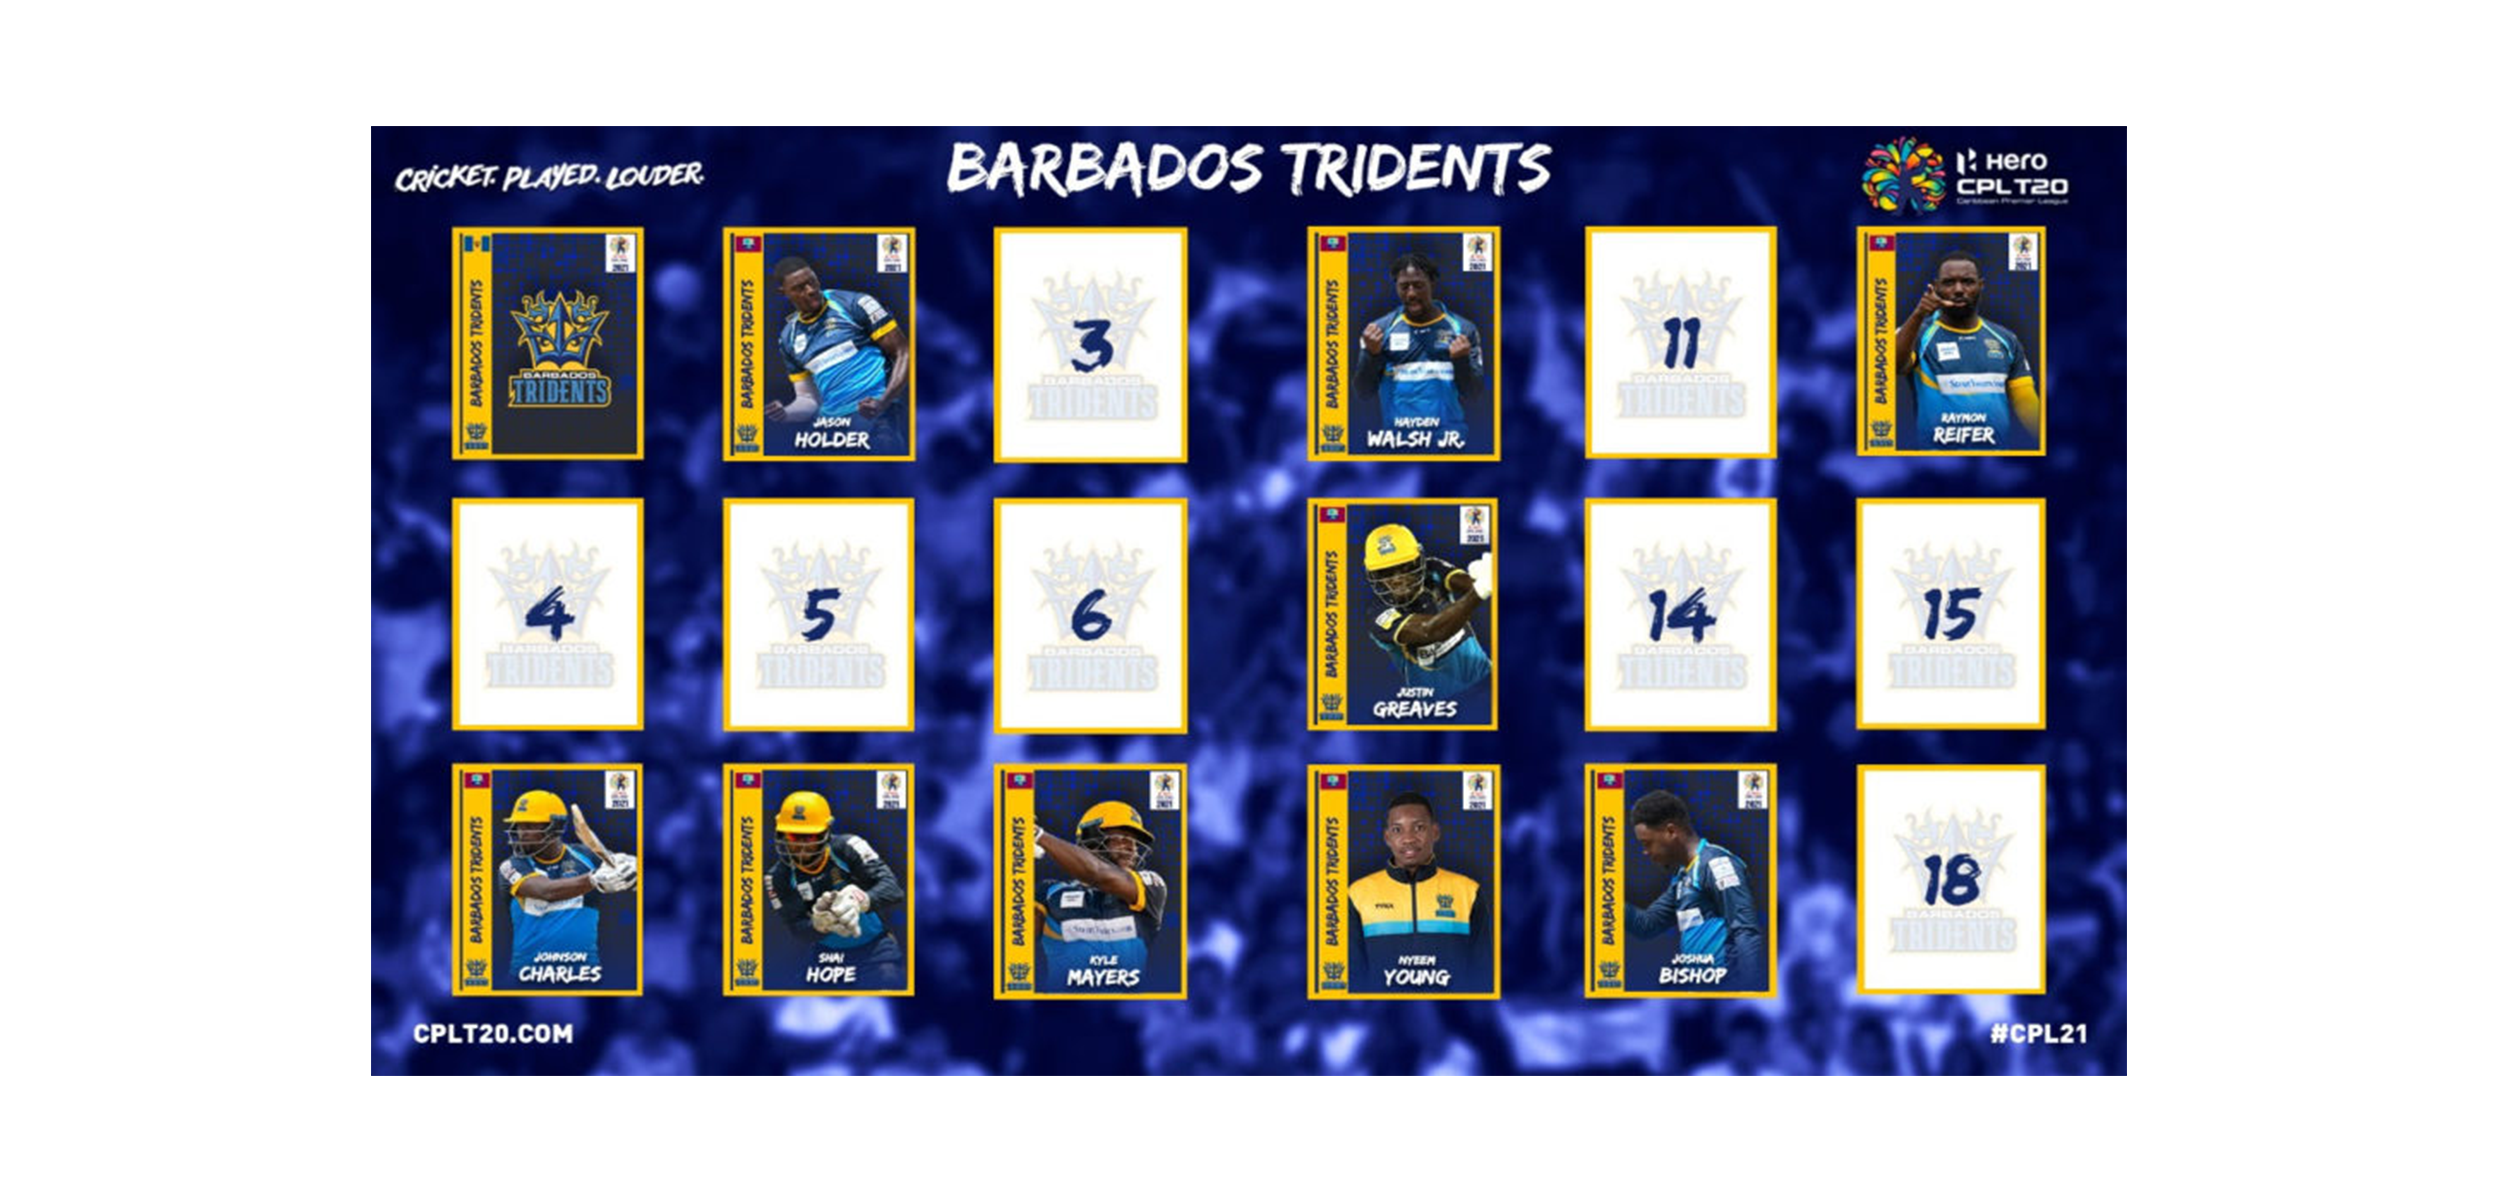 CPL: Barbados Tridents announce 2021 retentions